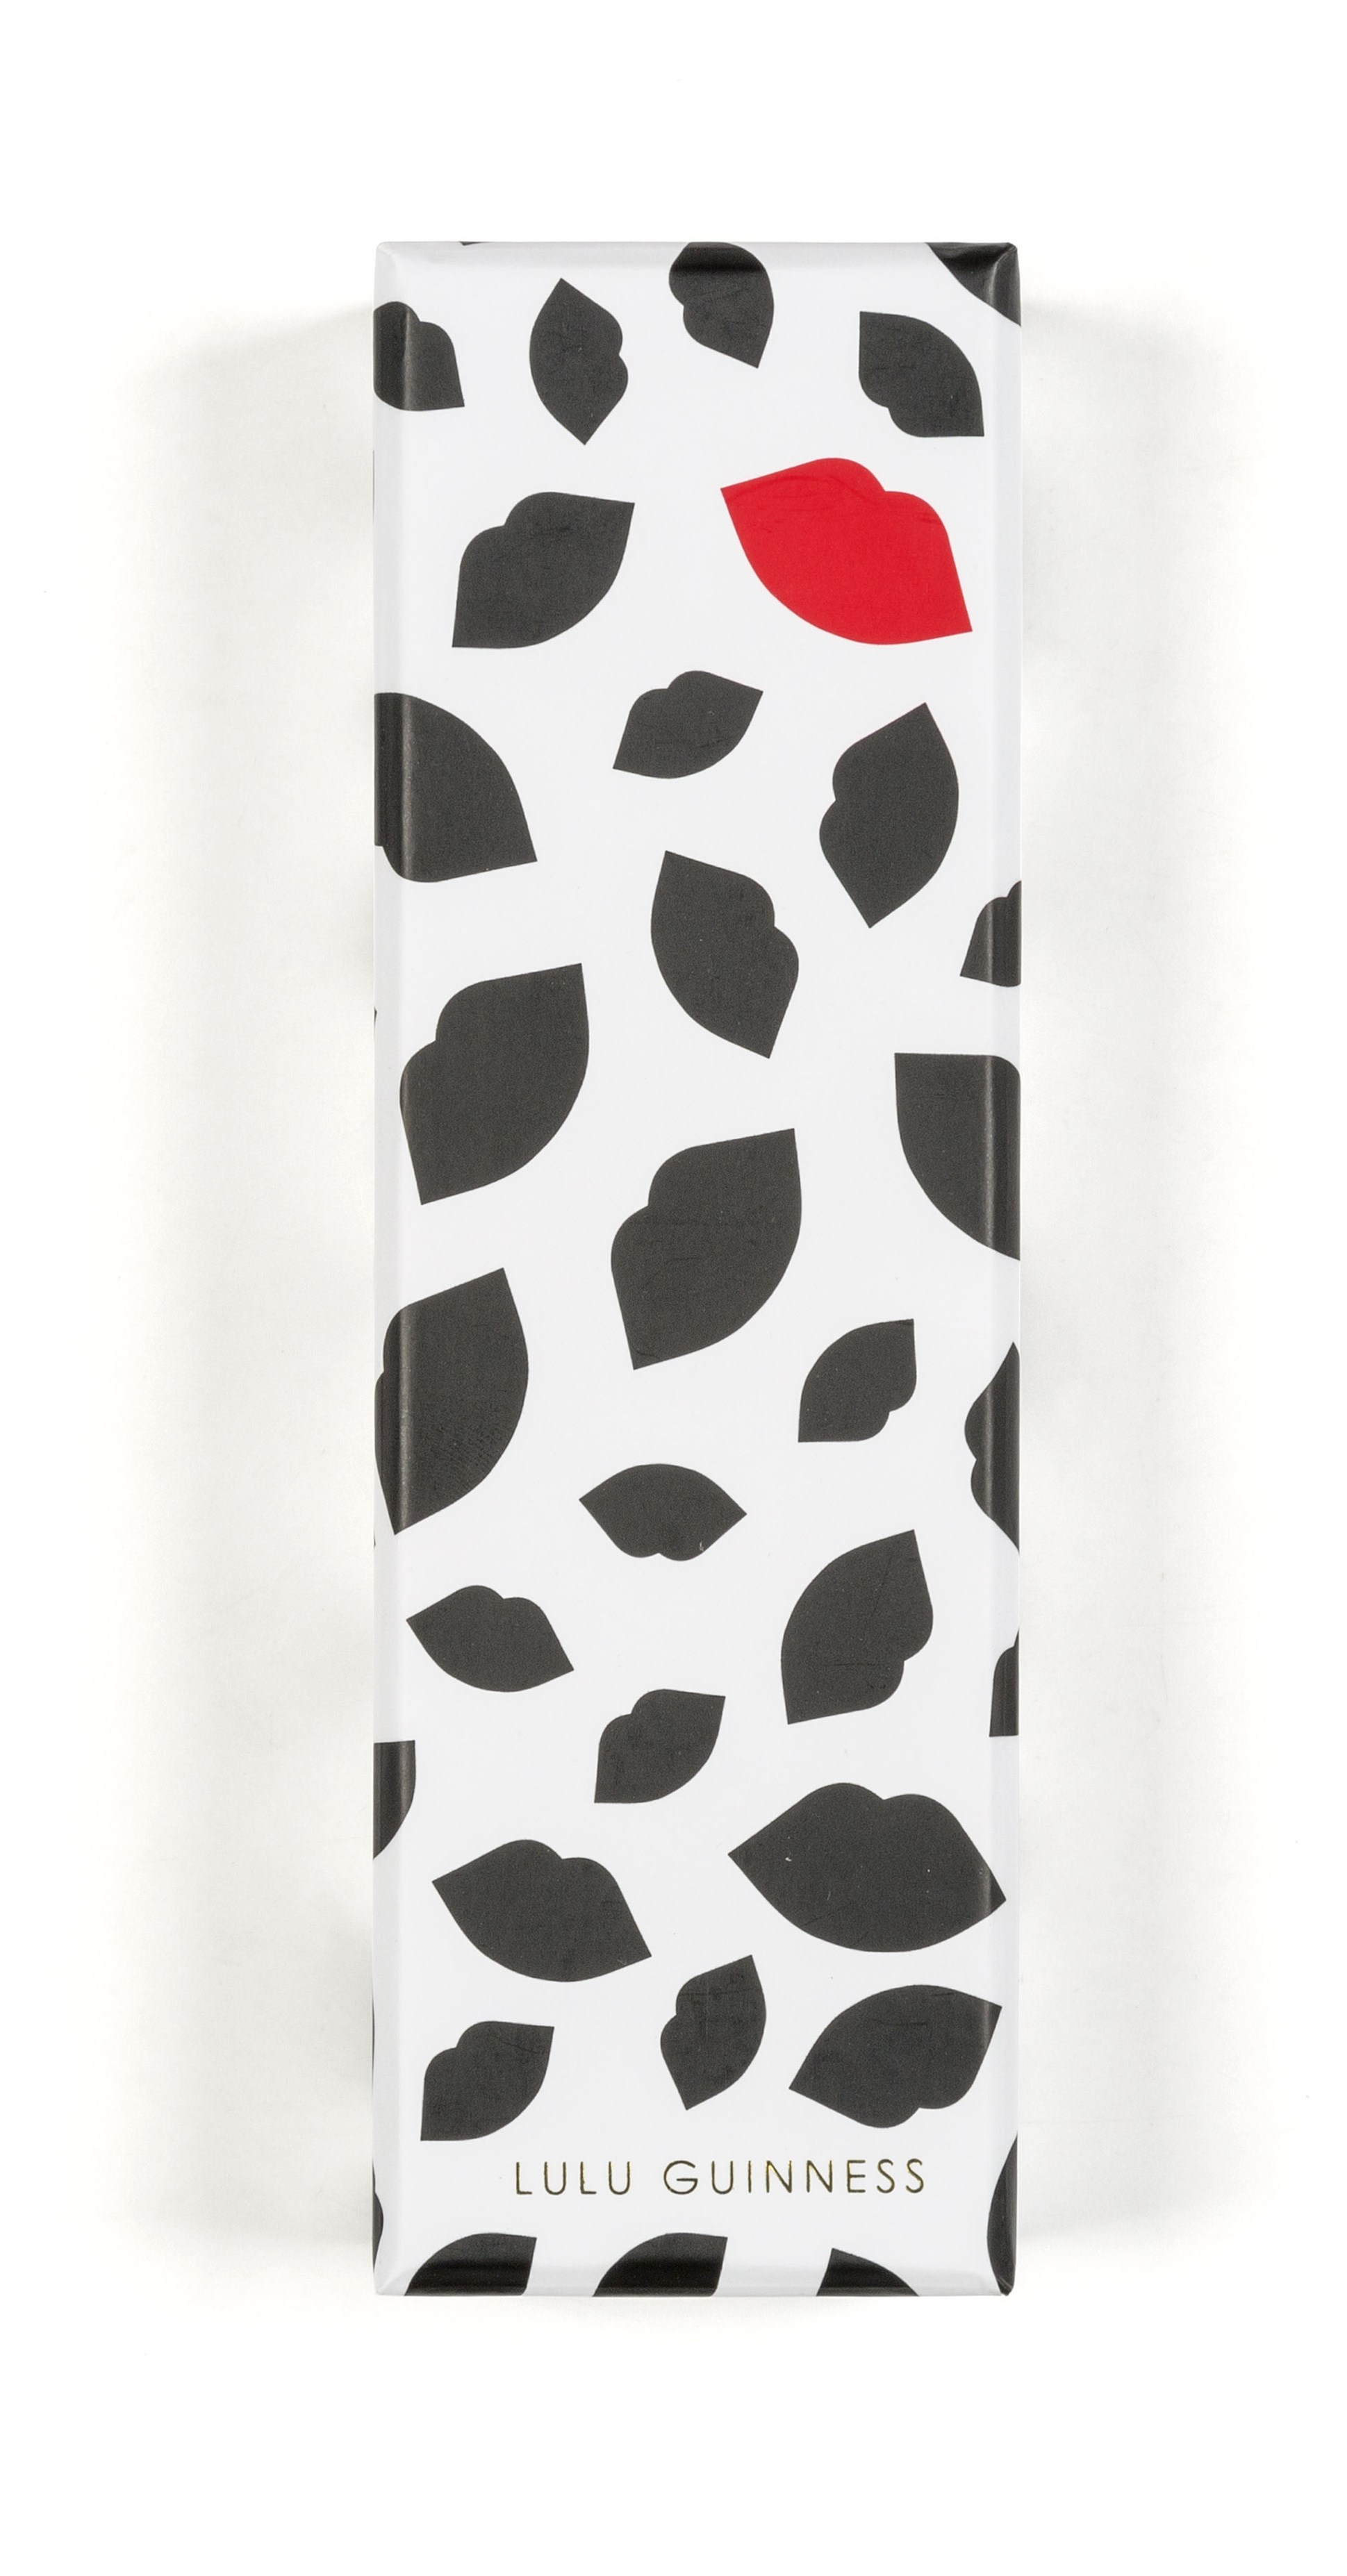 Lulu Guinness Boxed pen